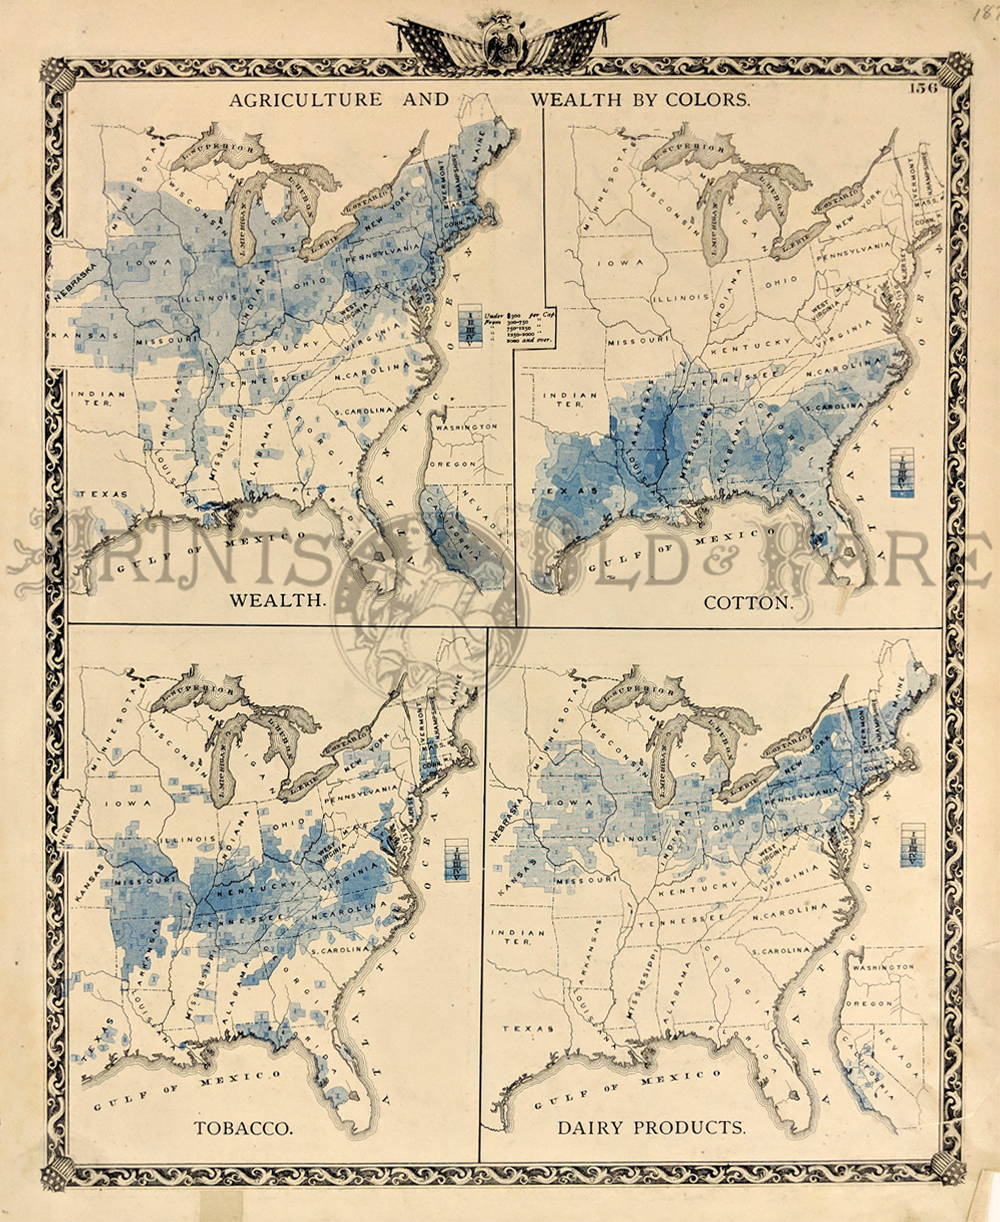 1876 wealth and agriculture u s map early eastern united states by colors four maps on one page shows concentrations of wealth and industries of